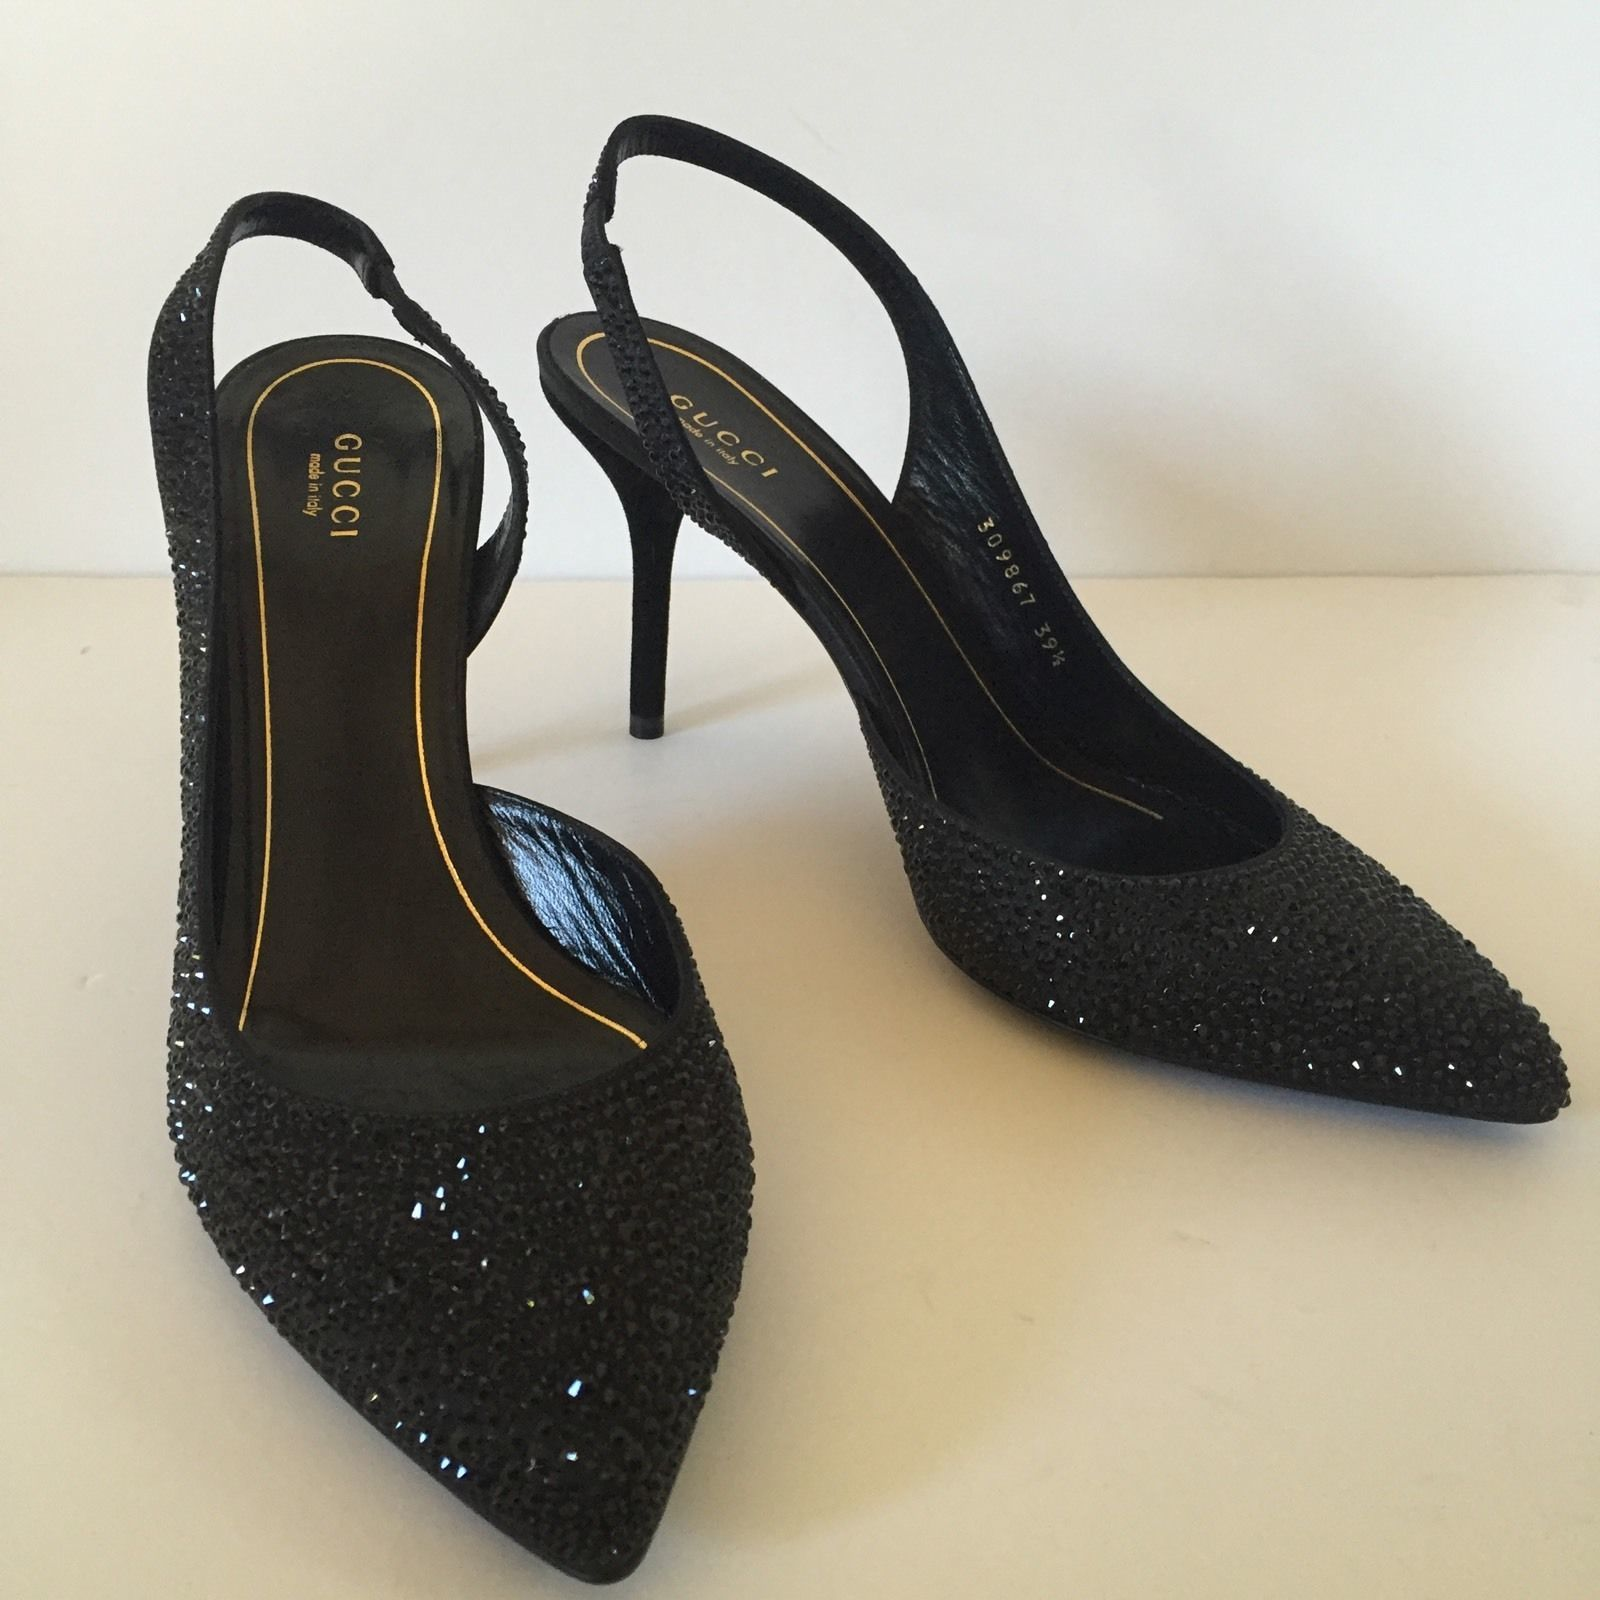 047e6acec2b AUTH NEW GUCCI 39.5 US 9 9.5 Pointy shoes pumps heels crystals  1